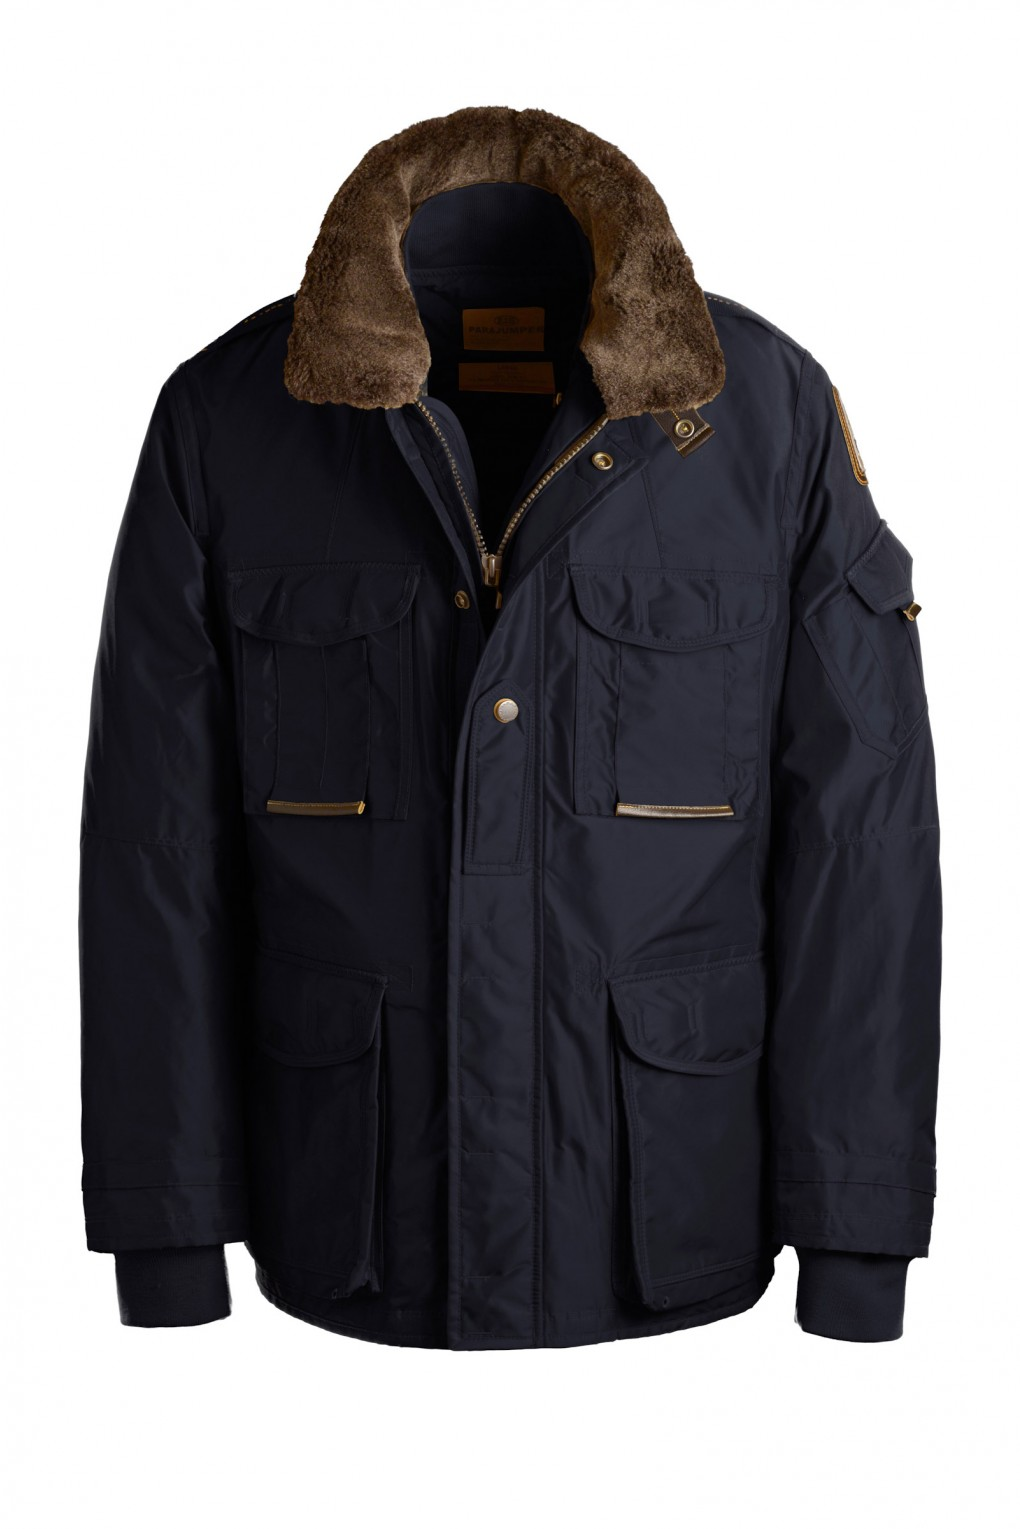 parajumpers PORTLAND man outerwear Navy